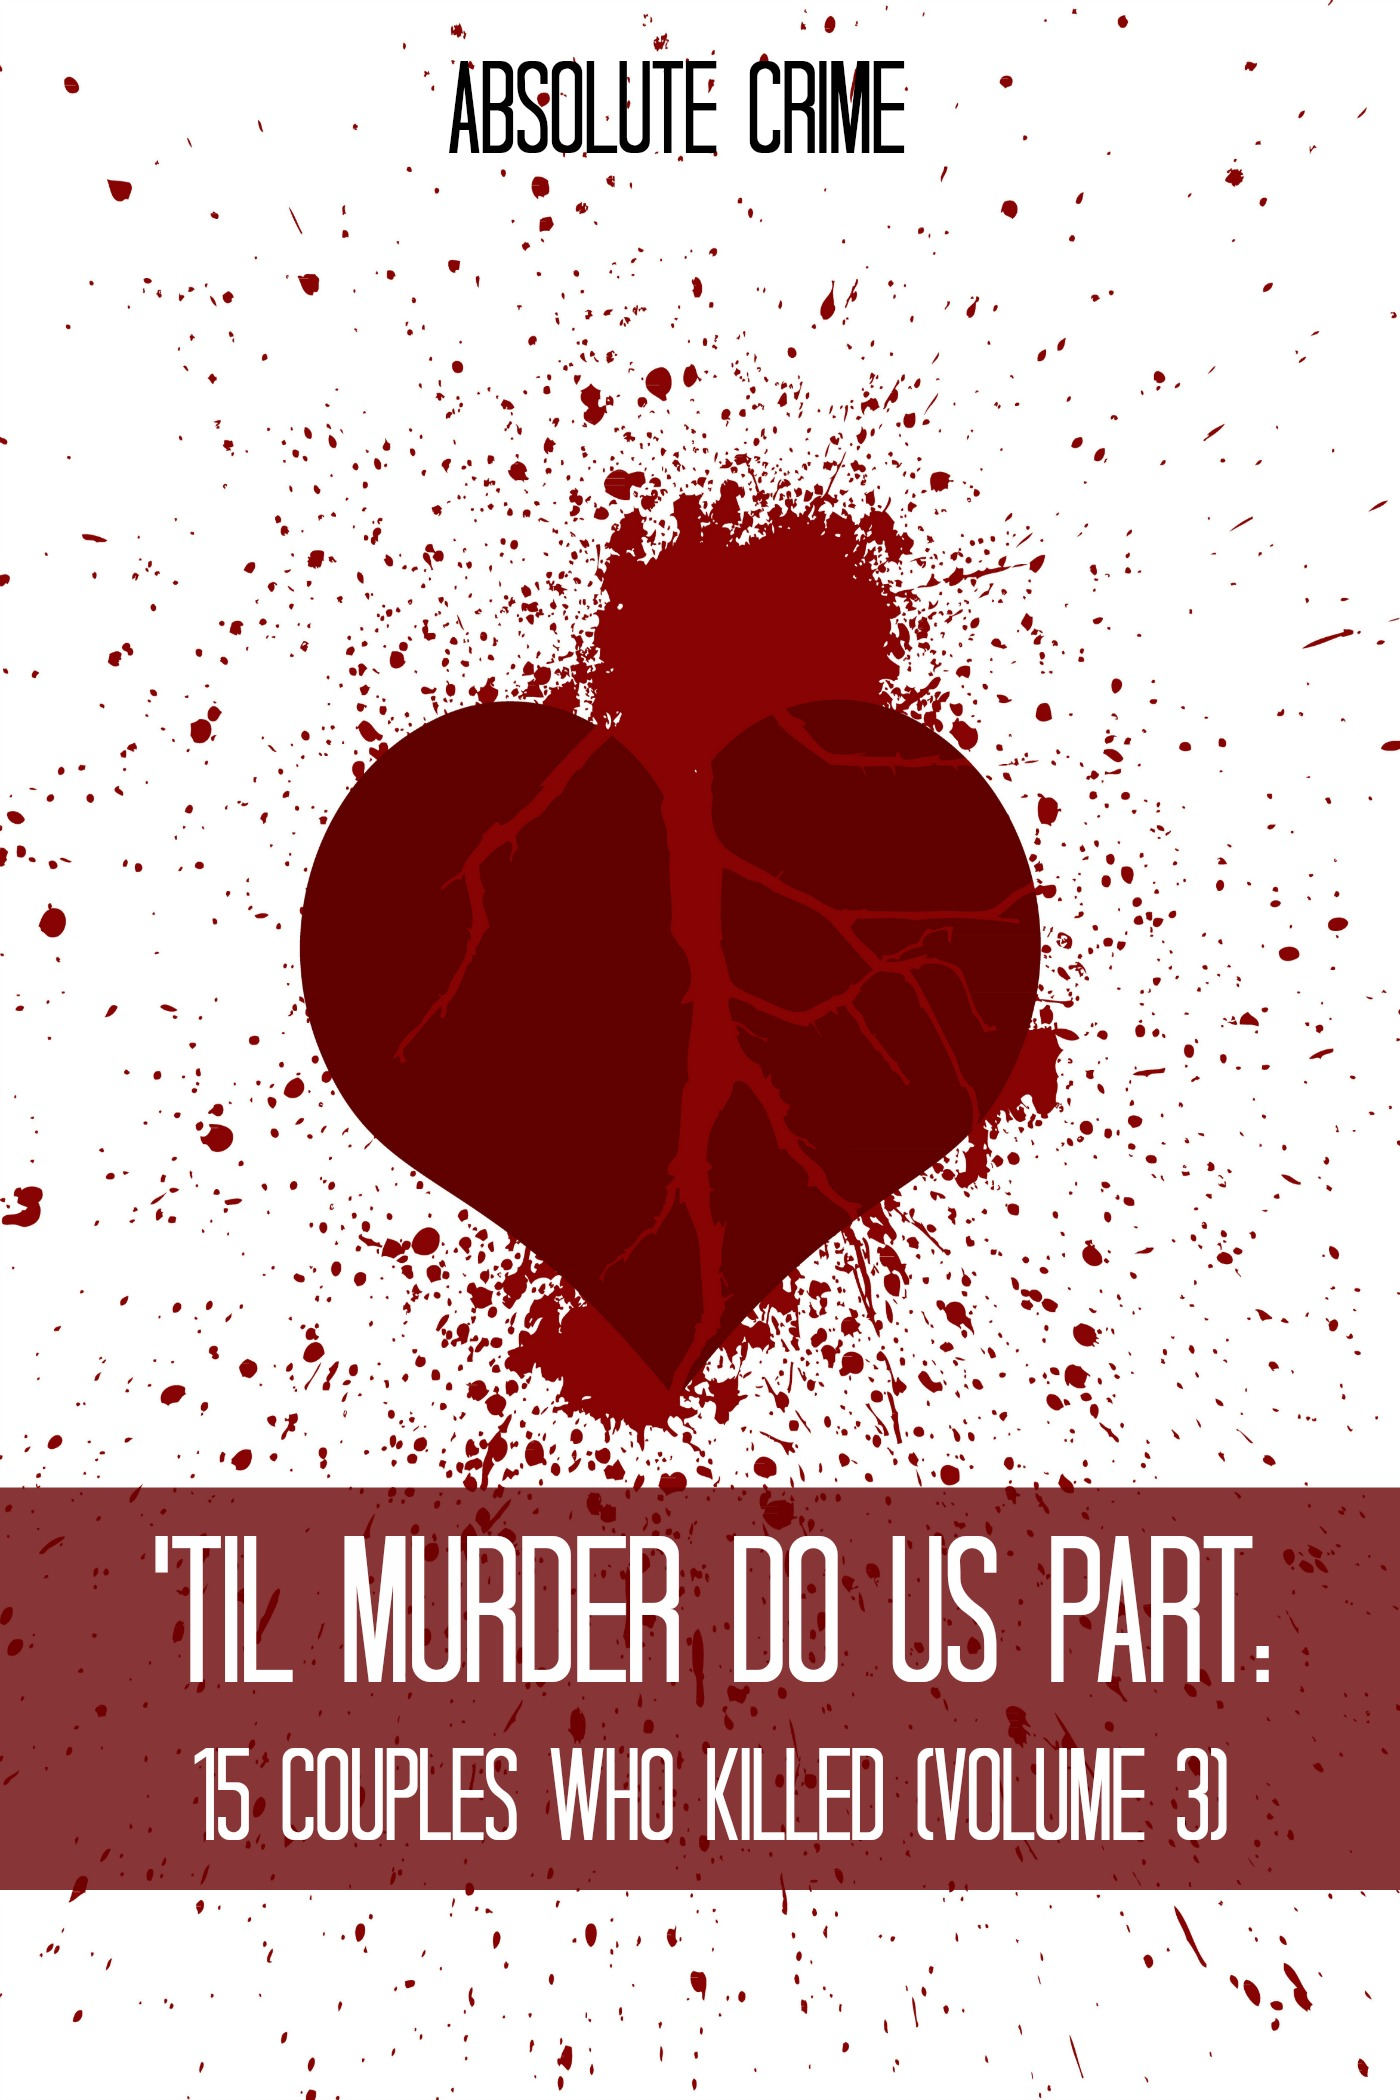 'Til Murder Do Us Part